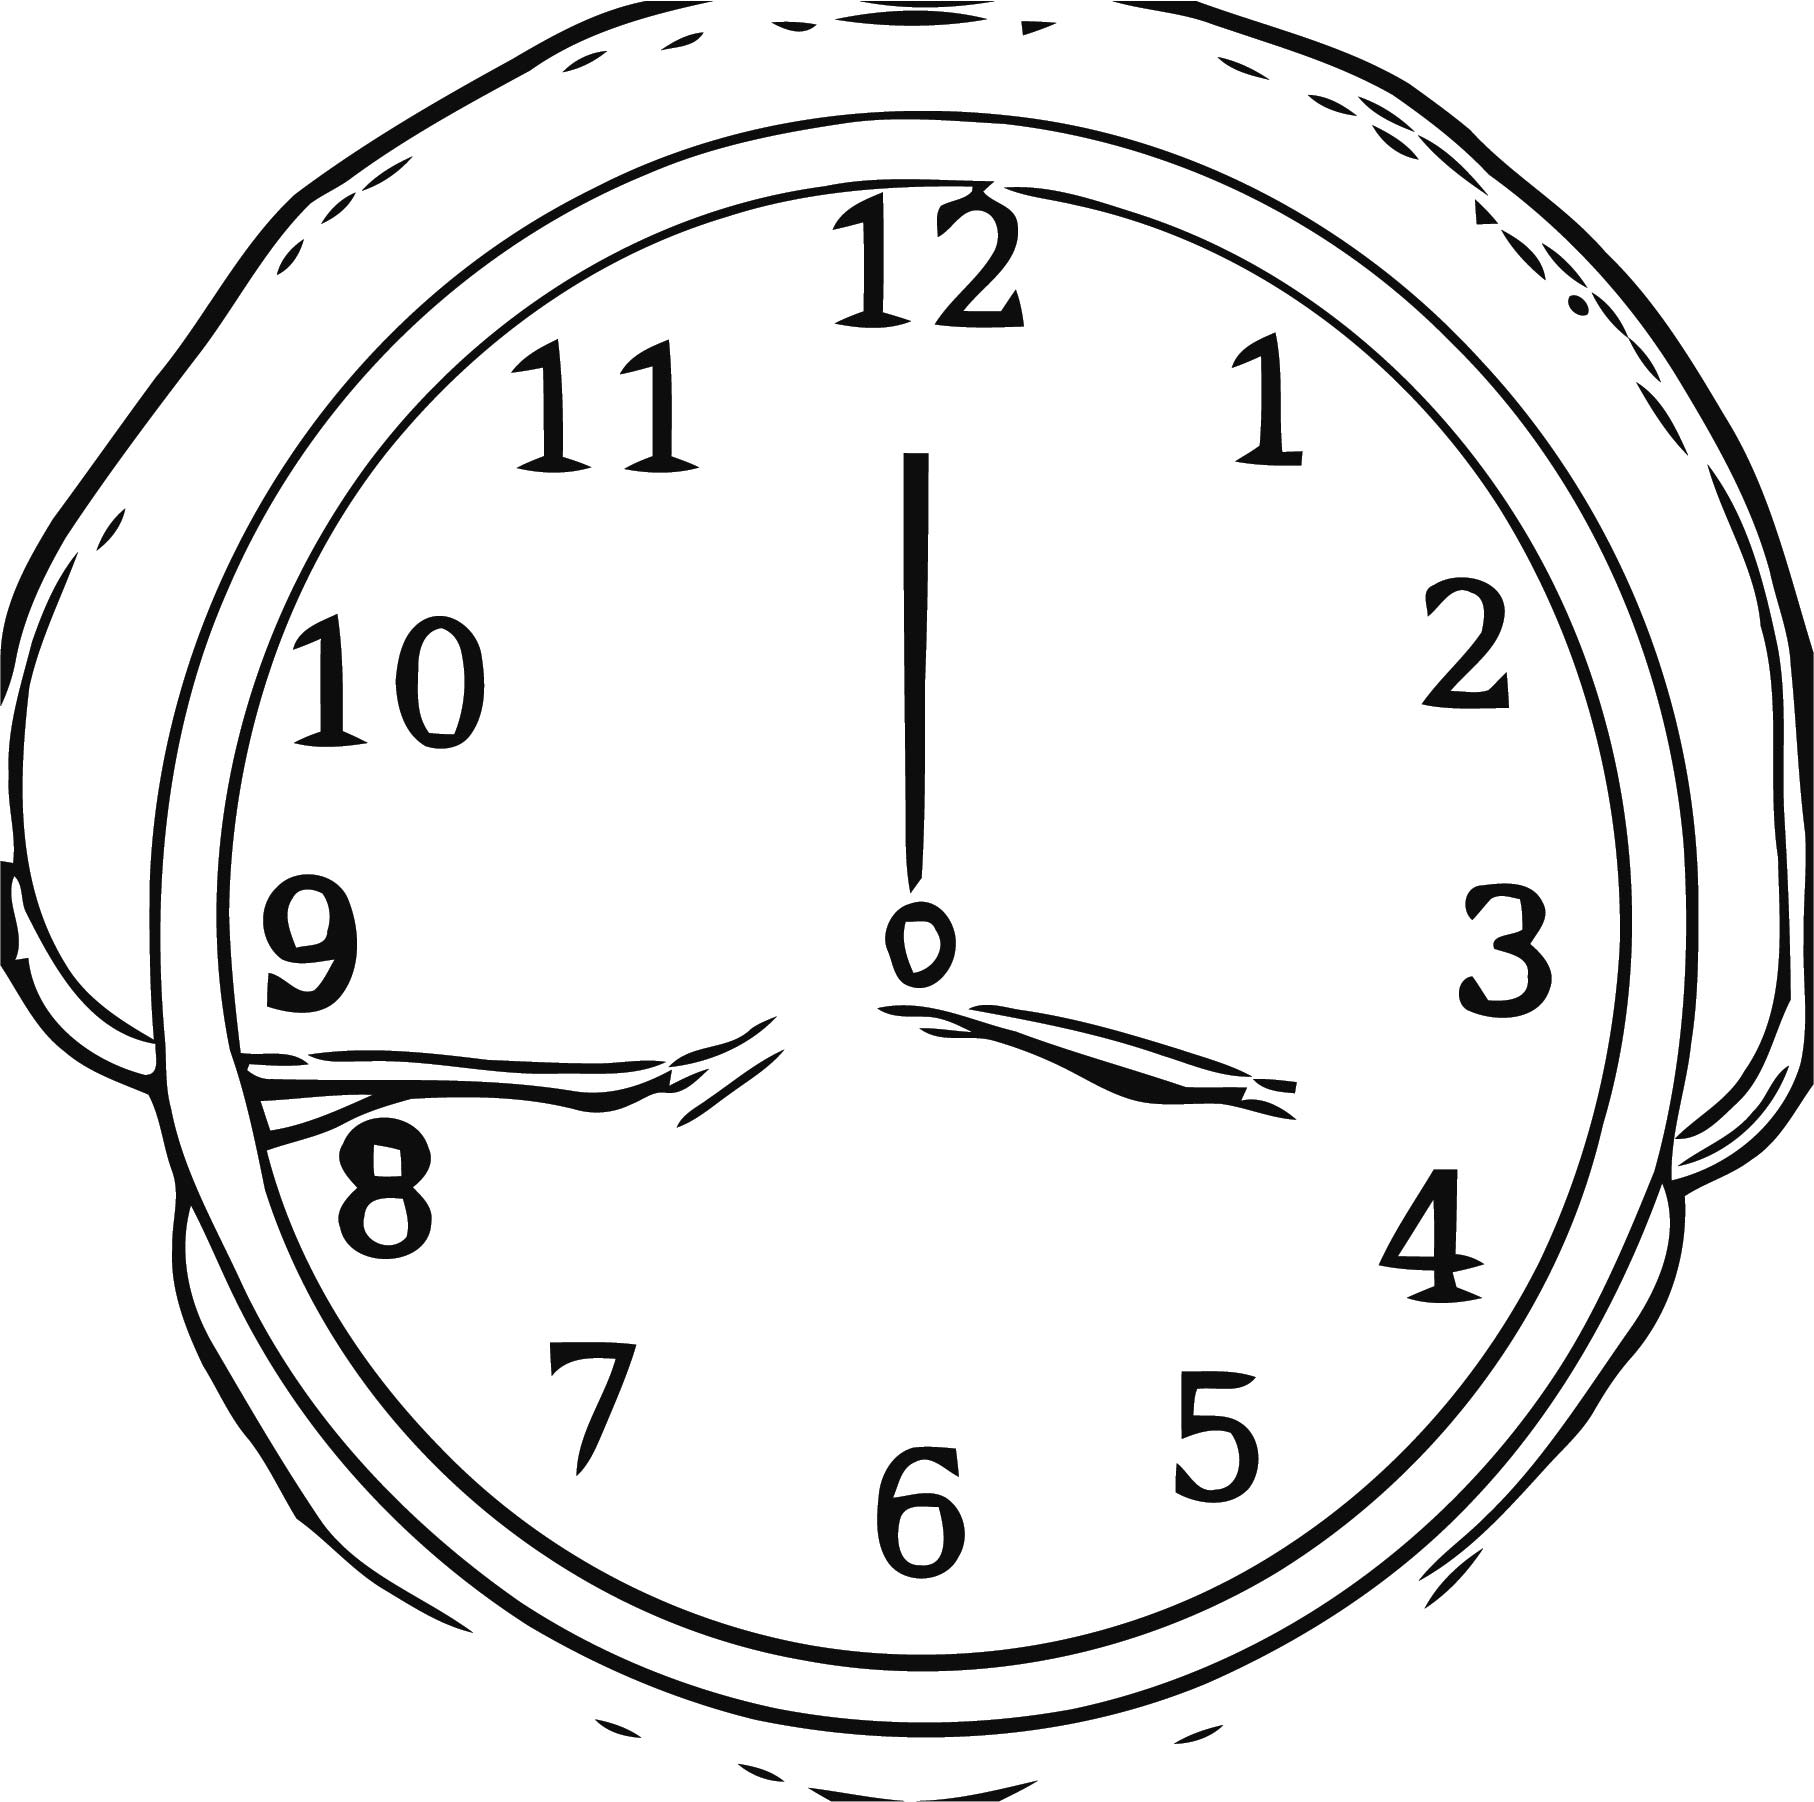 Clock Md Free Printable 1 Cartoonized Free Printable Coloring Page